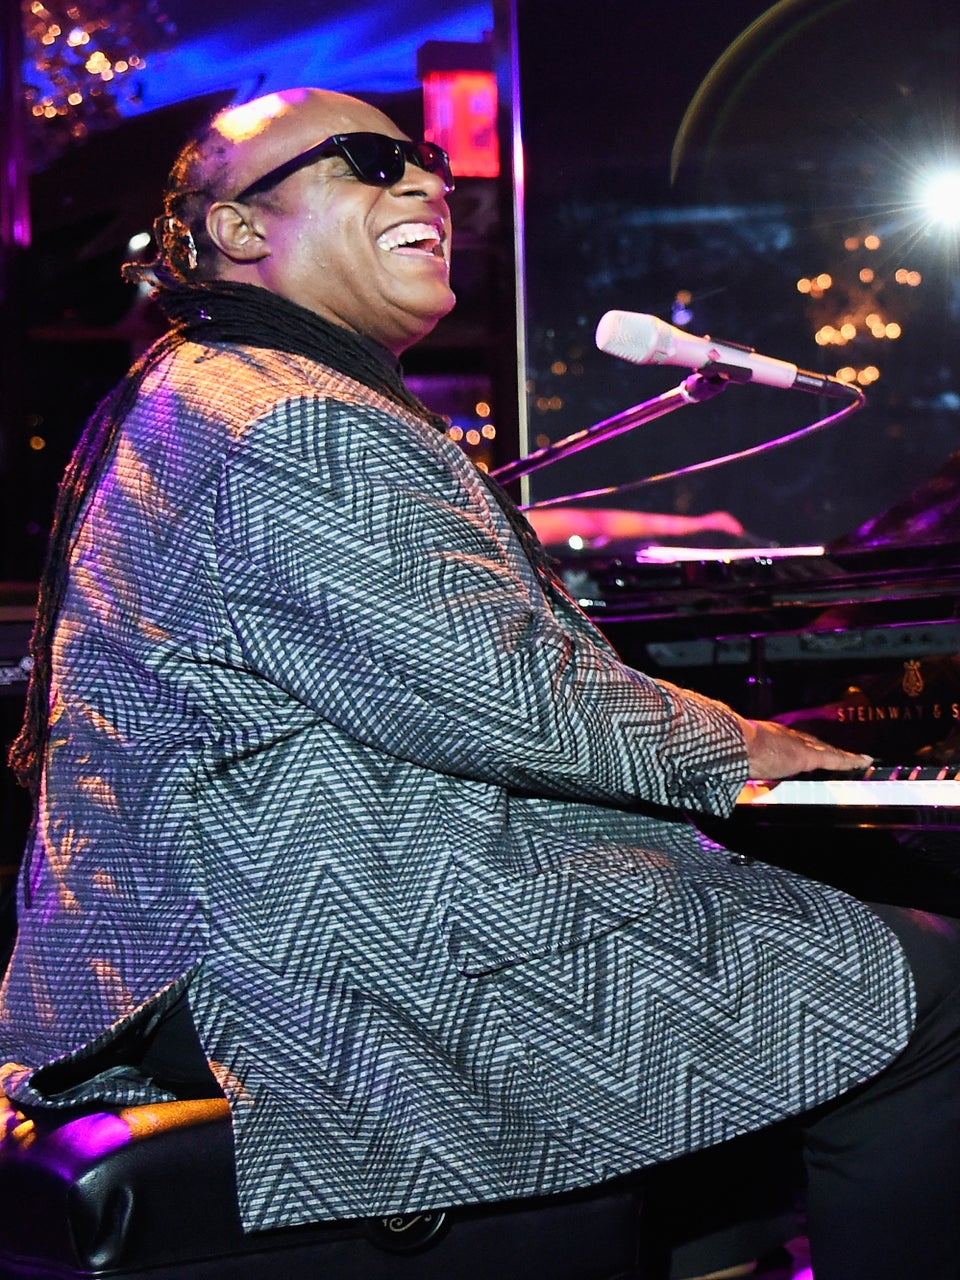 Stevie Wonder: Voting For Trump Is Like Asking Me To Drive During An Emergency